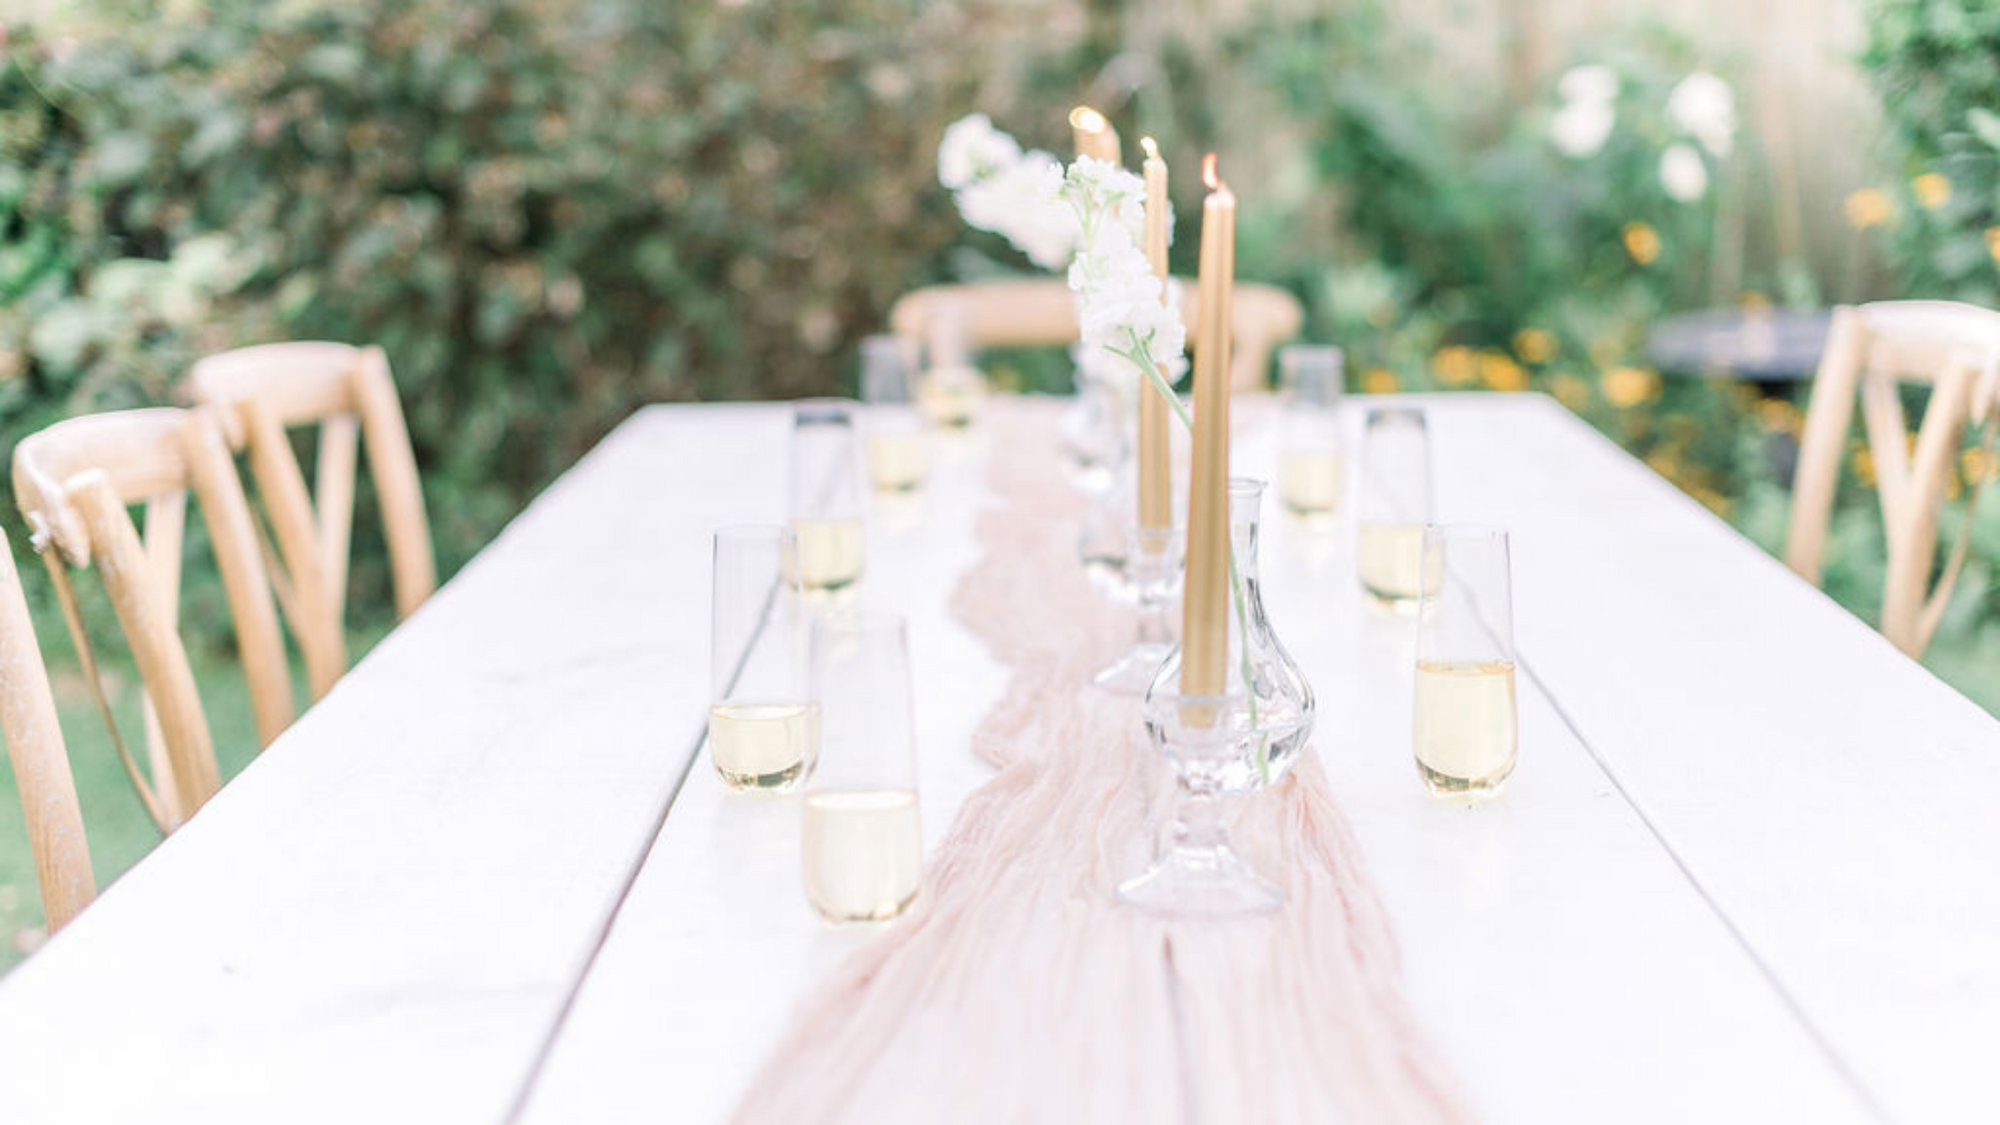 How to: Make Your Wedding Look Expensive Without Spending a Fortune